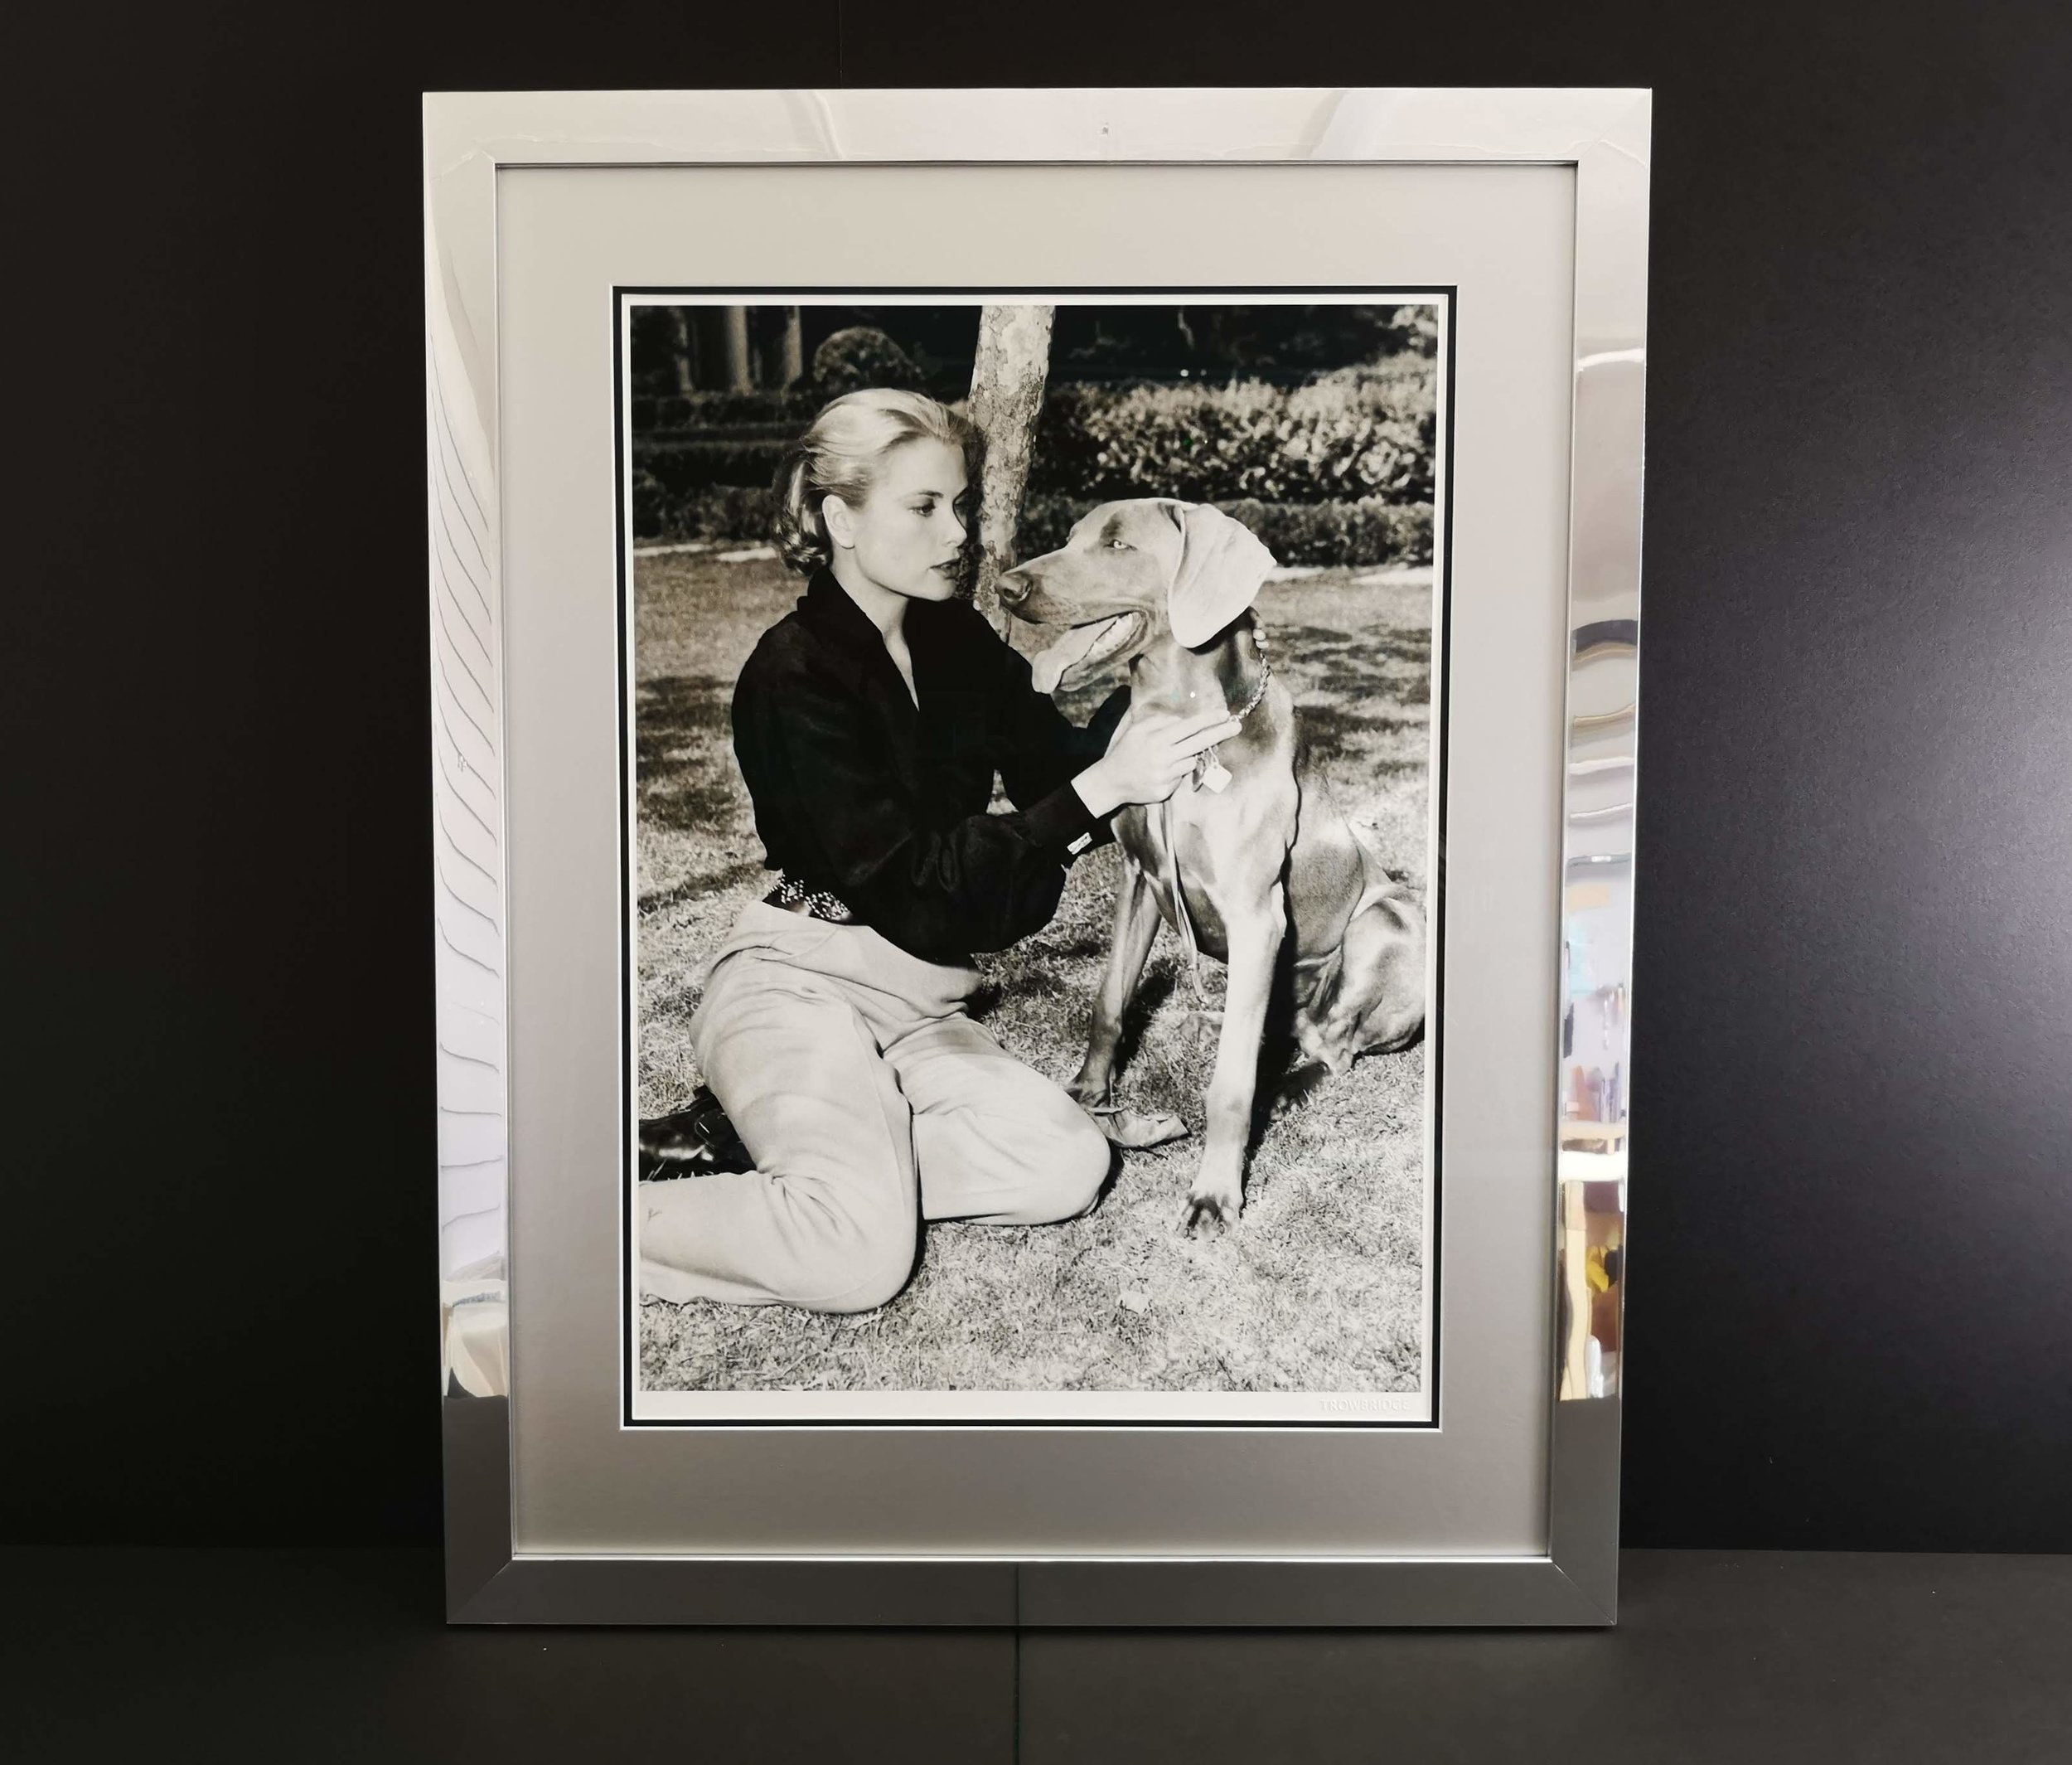 crayford-picture-framing-hollywood.jpg